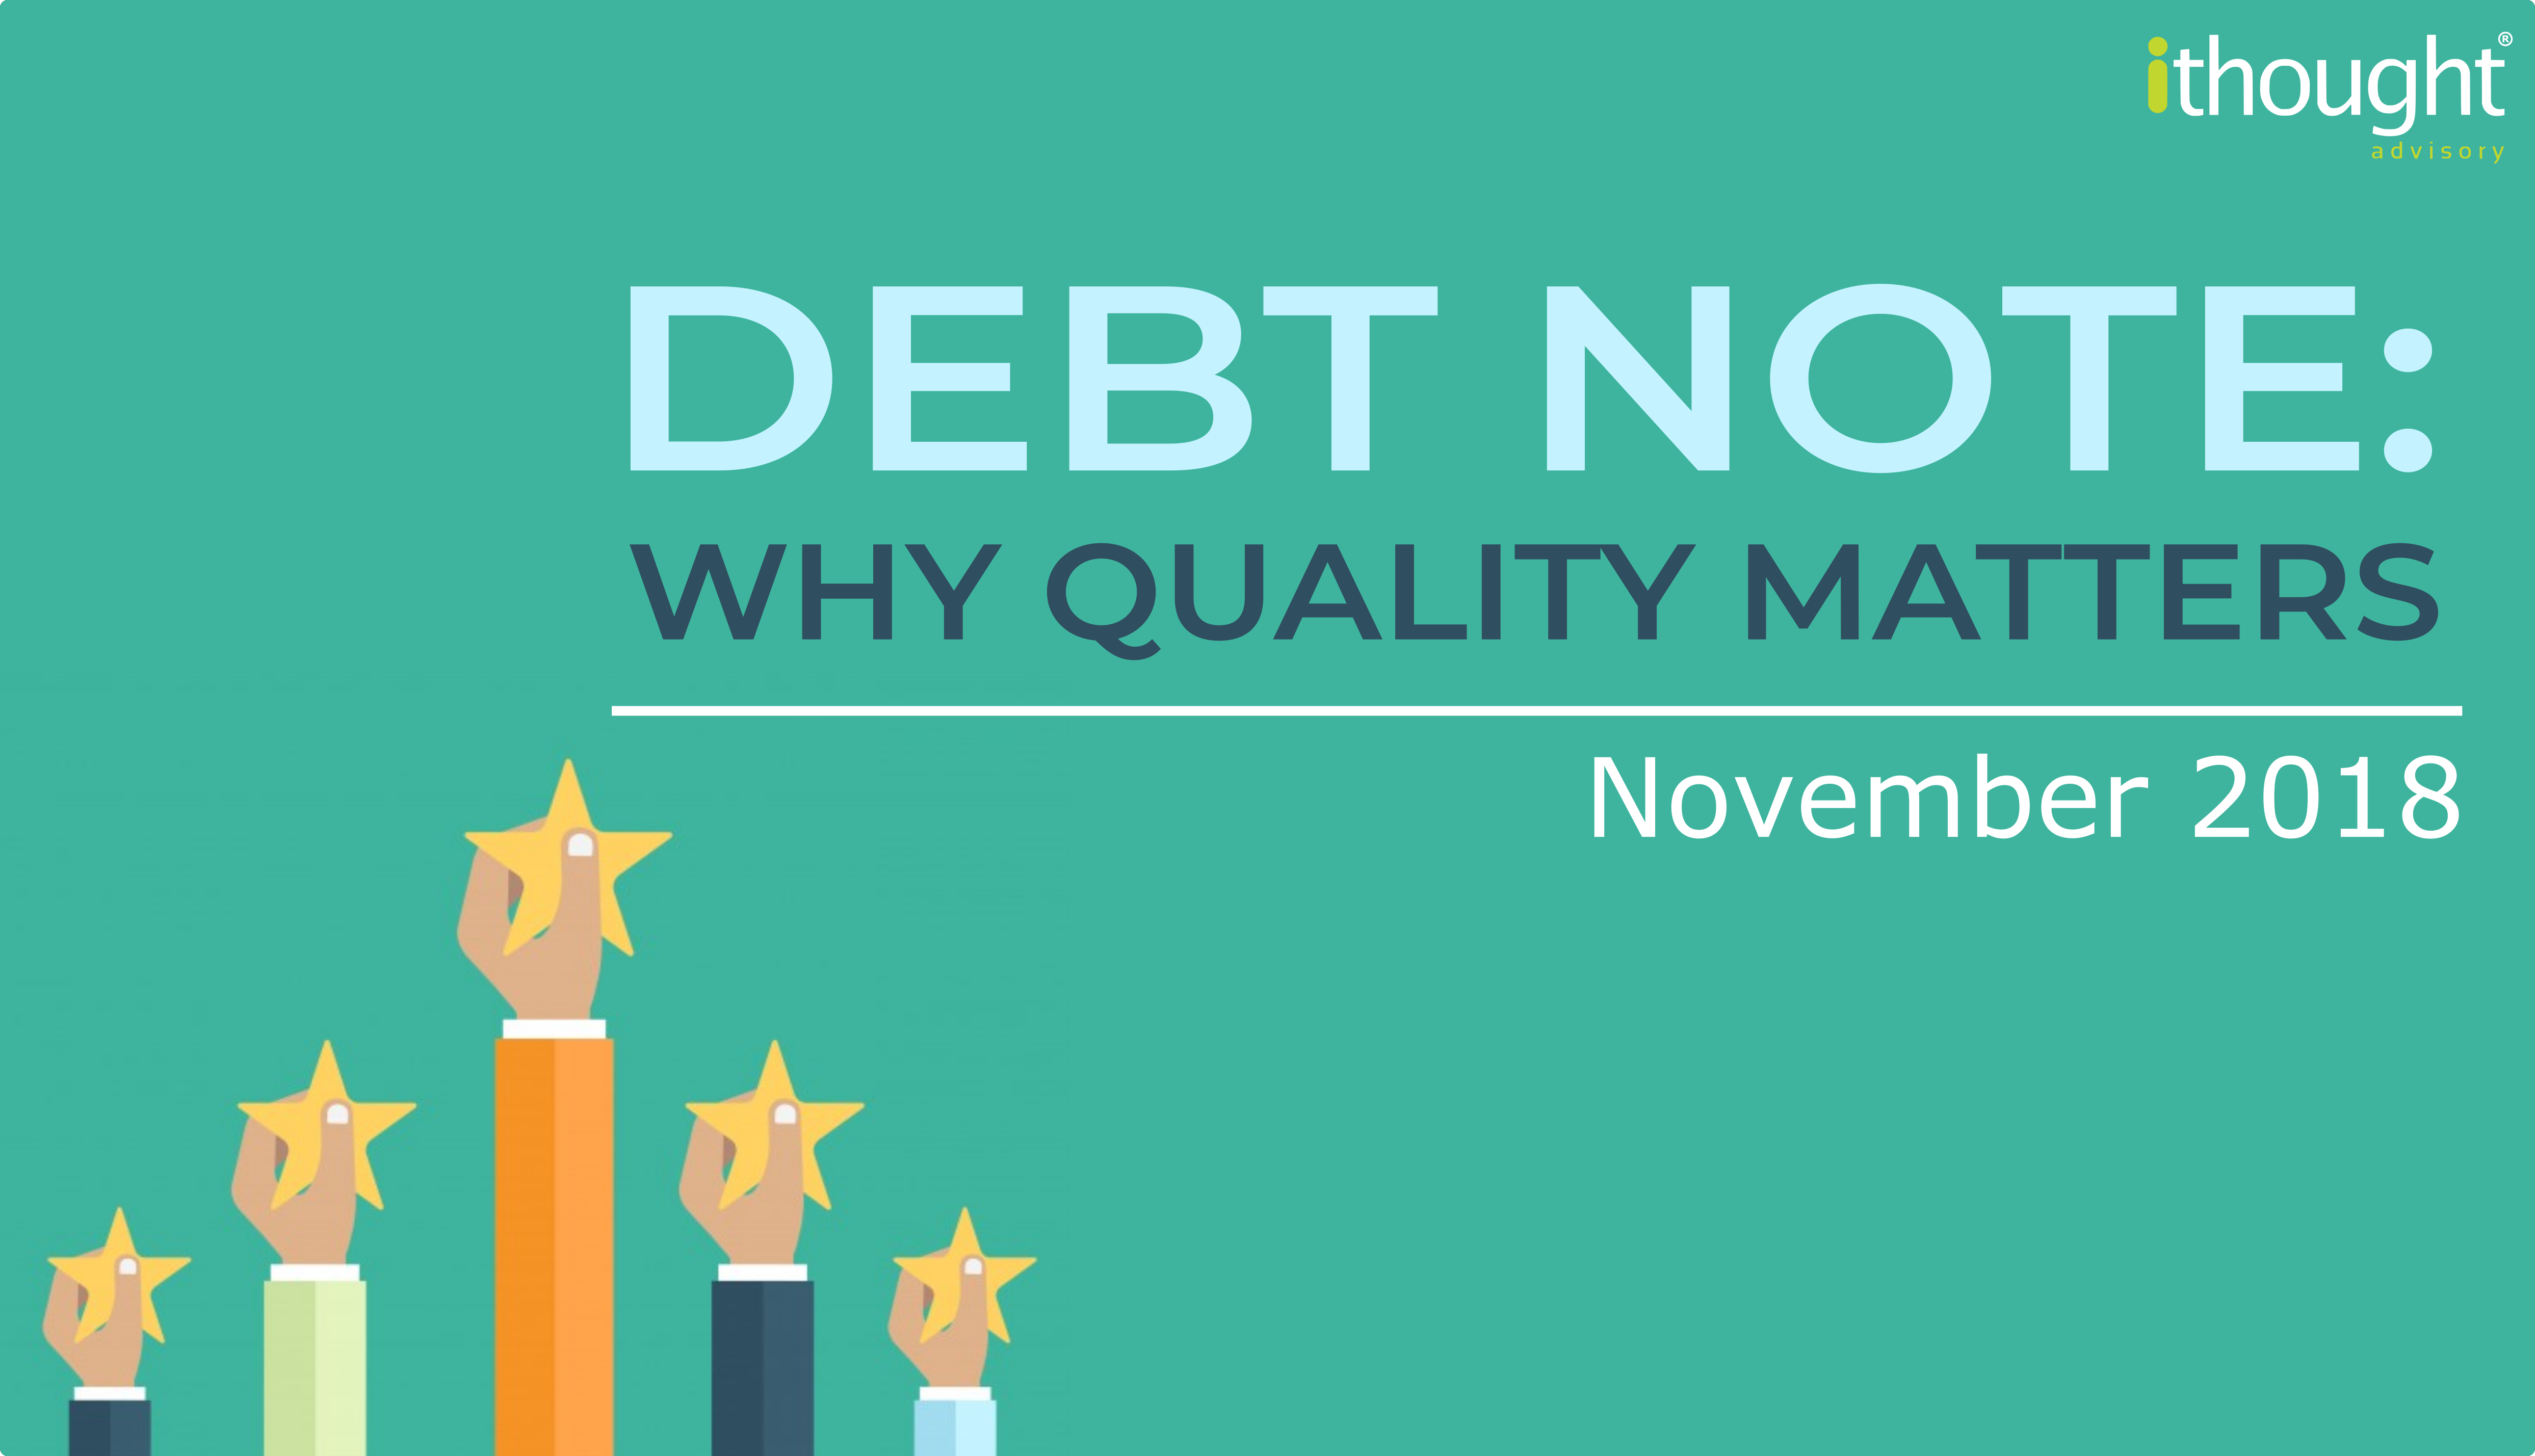 Debt Note: Why Quality Matters